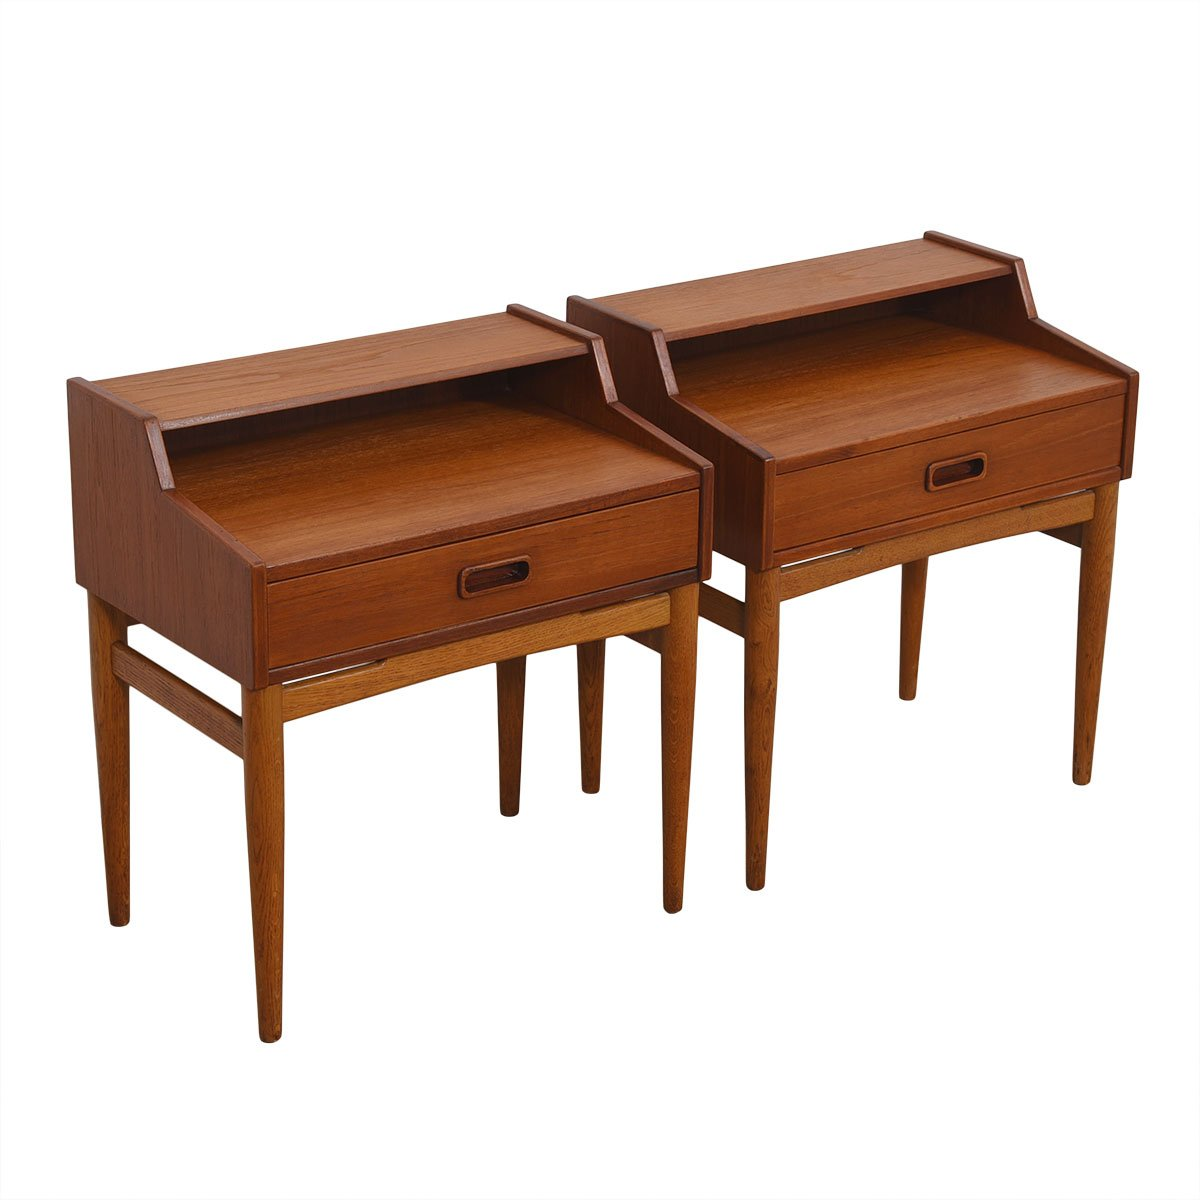 Petite Pair of Rare Arne Hovmand-Olsen for Mogens Kold Teak Nightstands.